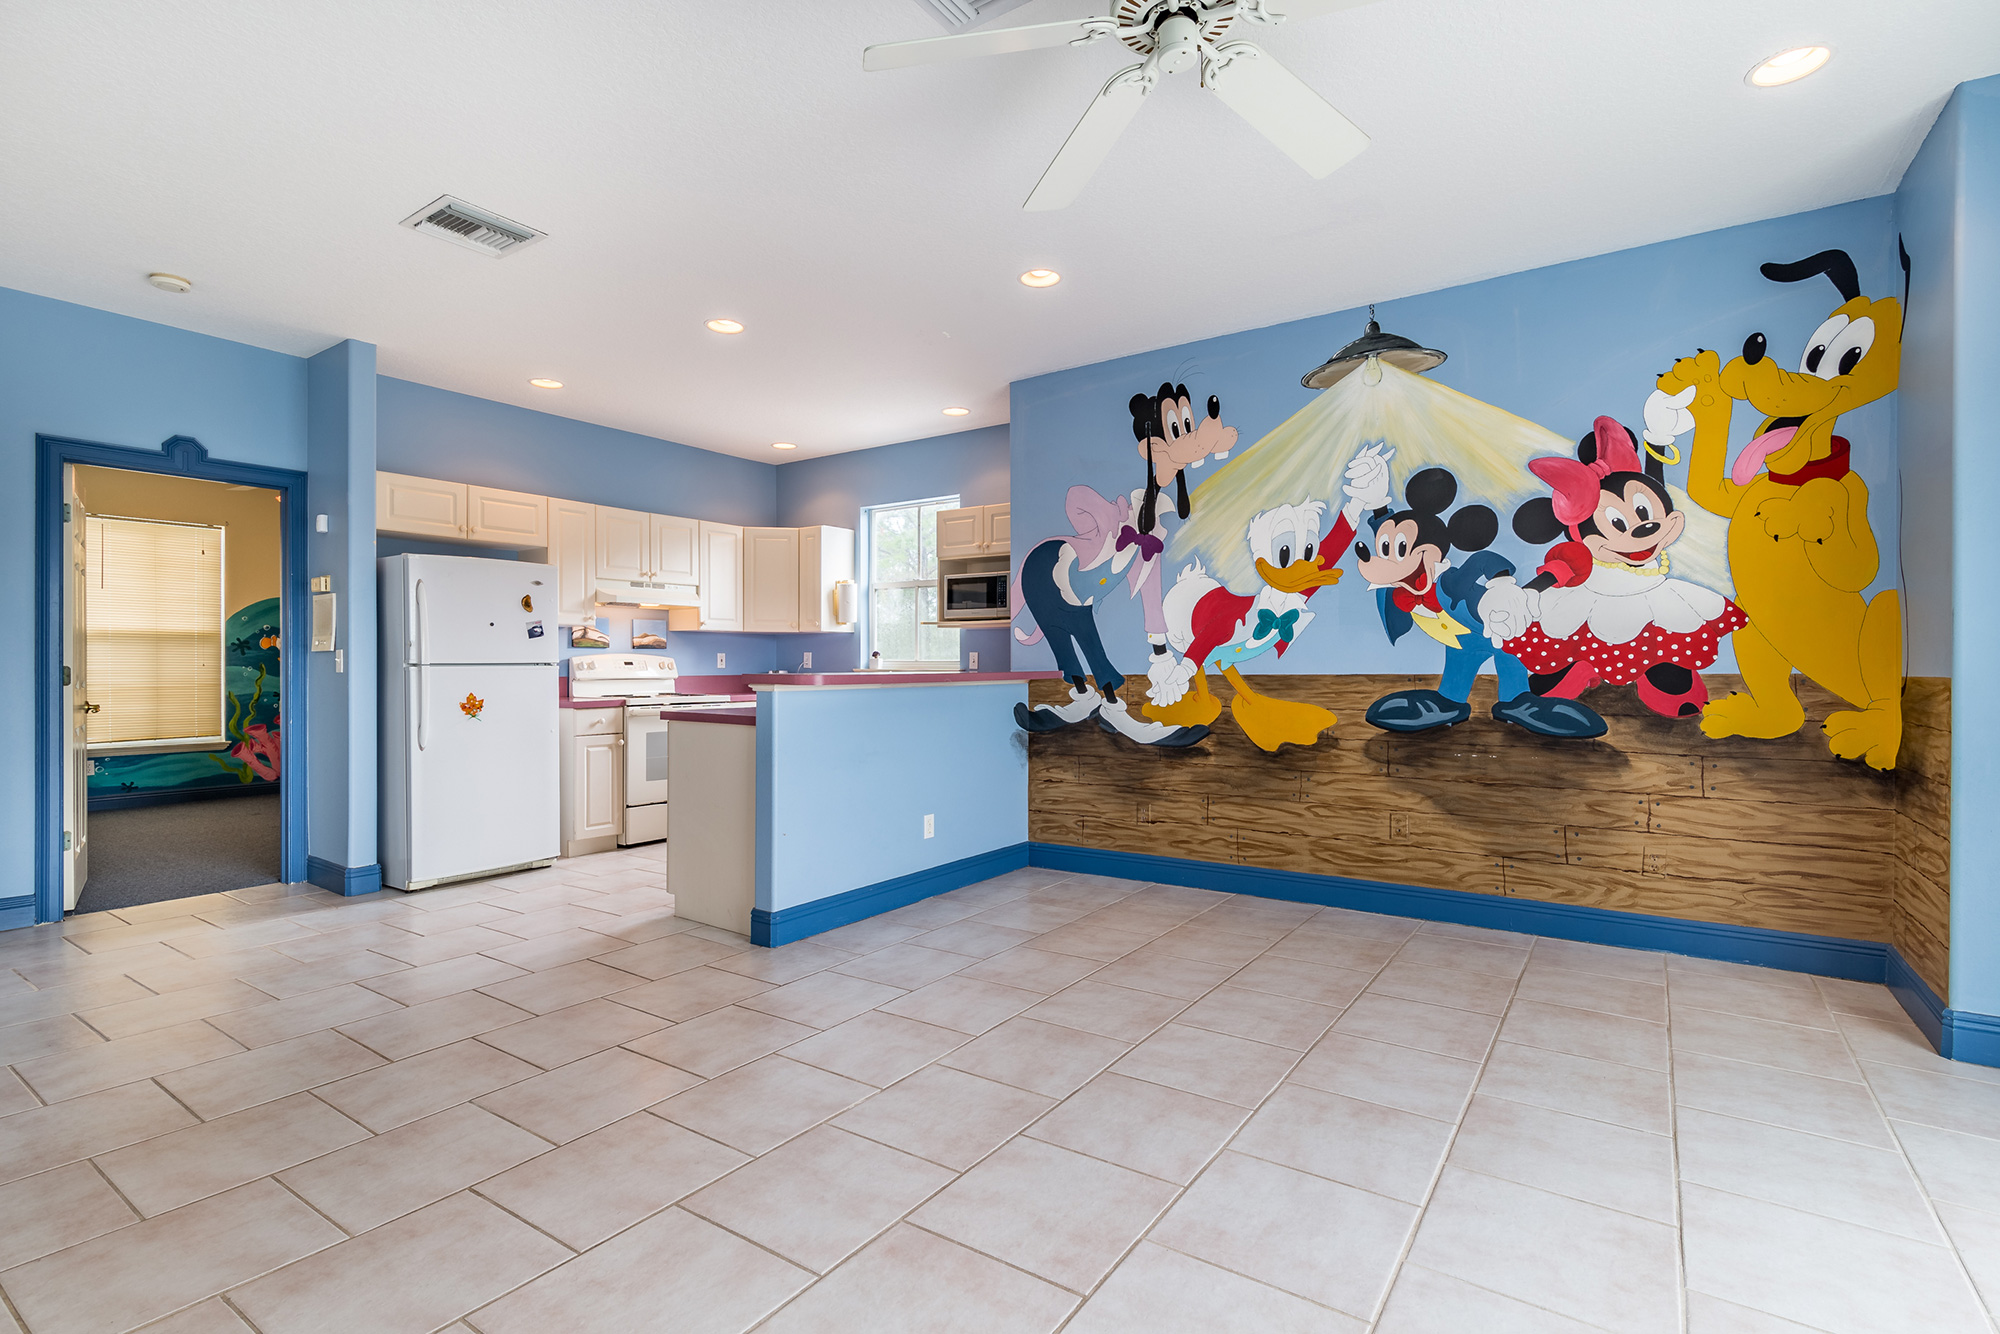 Disney Lovers' Florida House with Two Mickey Mouse–Shaped Pools Hits the Market for $850K disney-house-mural-character